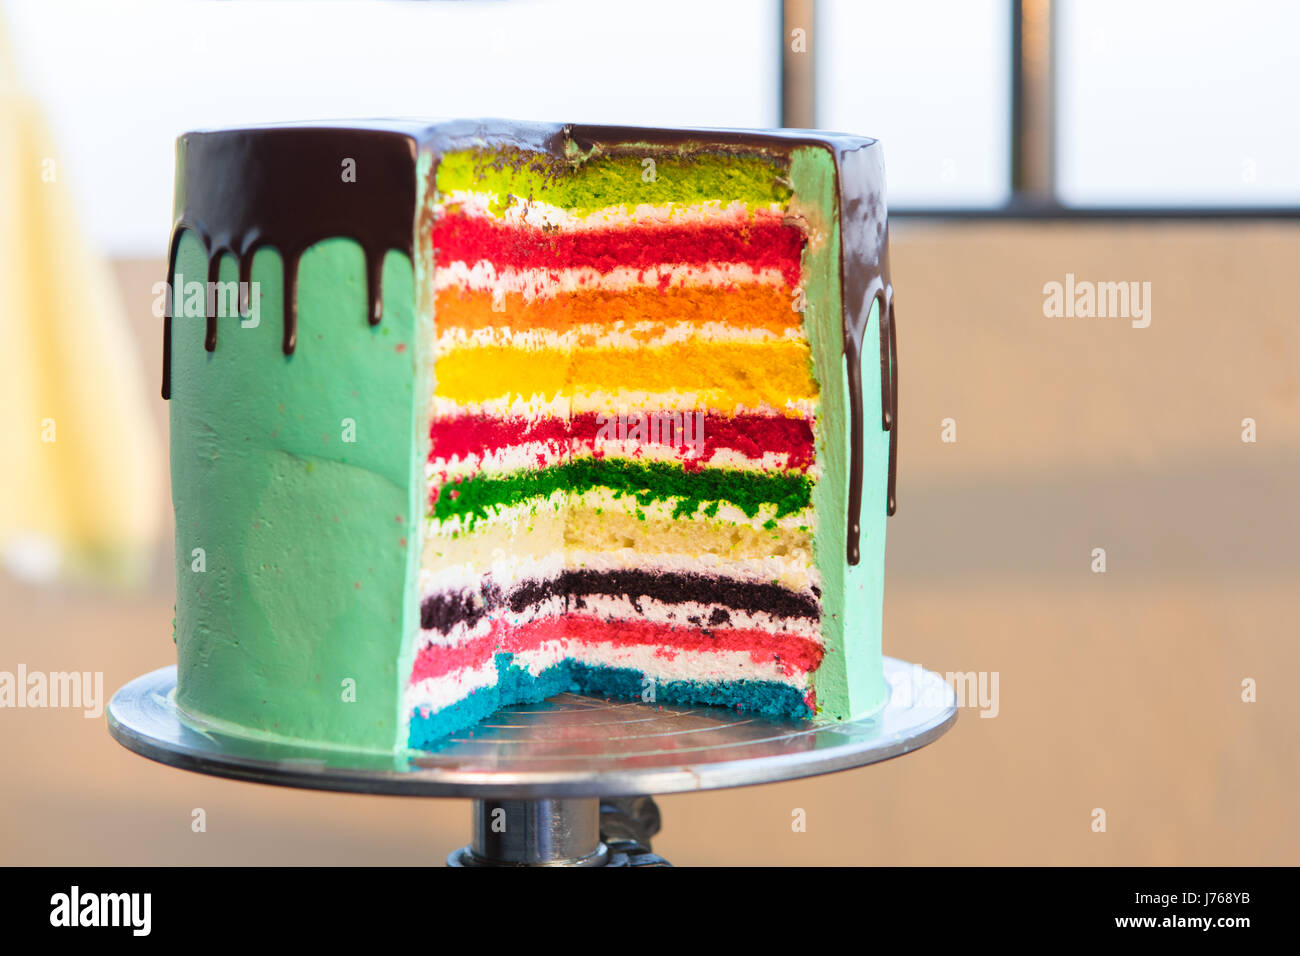 Colorful Rainbow Cake on a stand - Stock Image